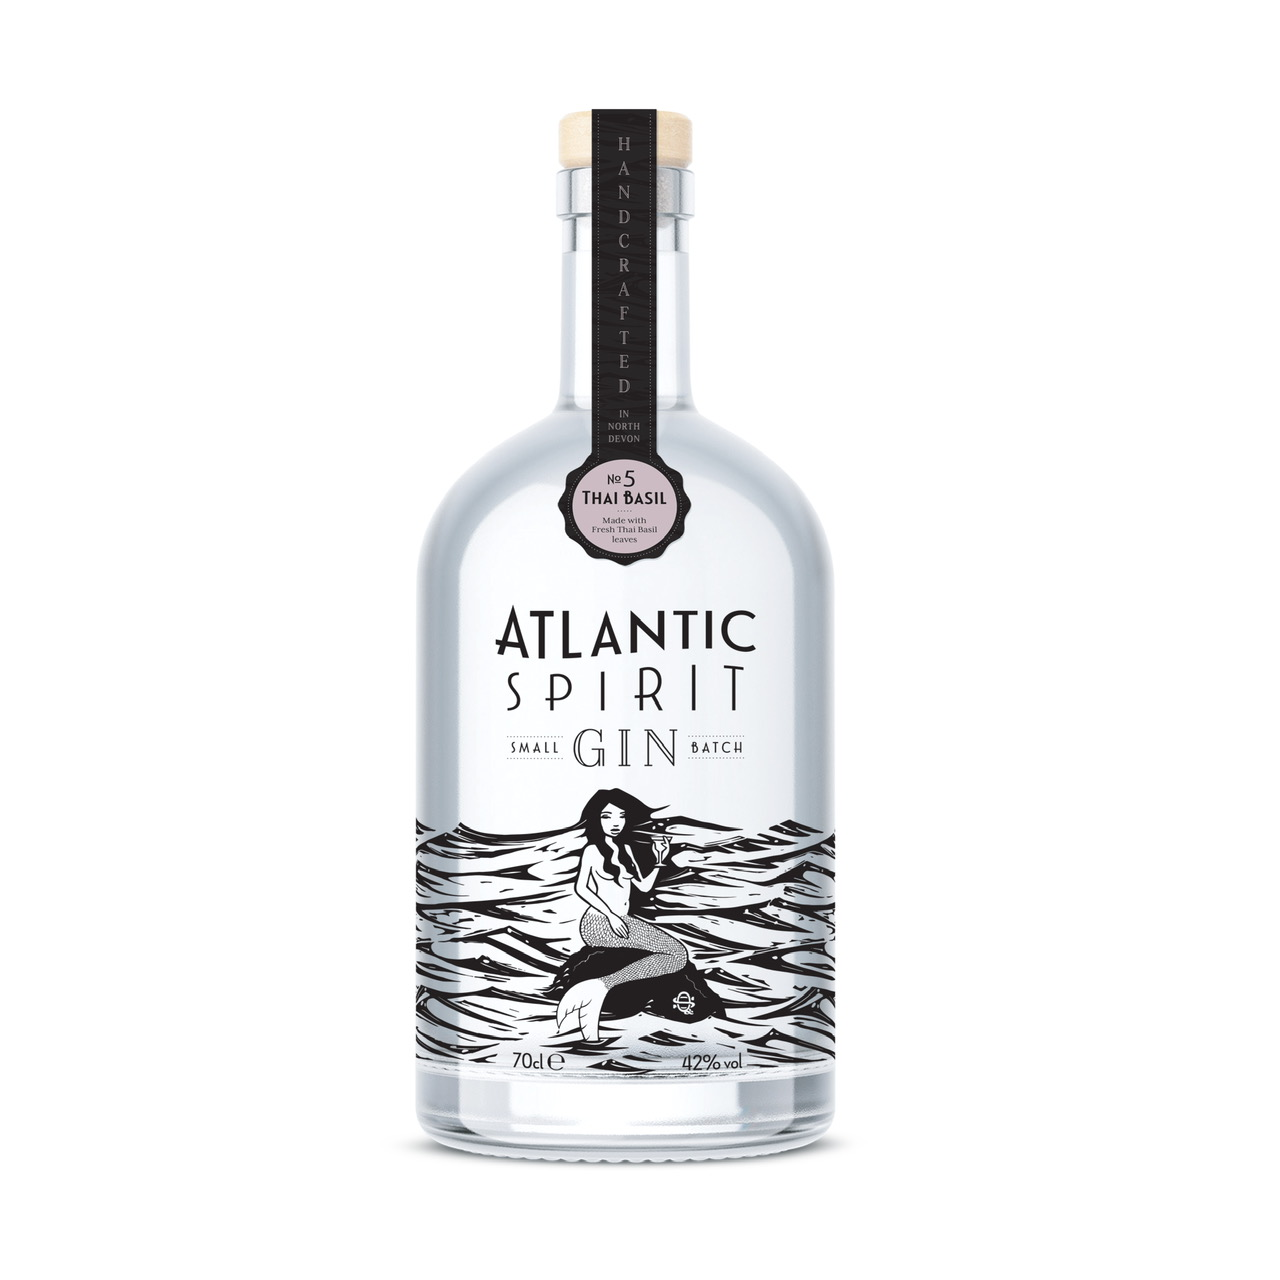 Atlantic Spirit No.5 Thai Basil